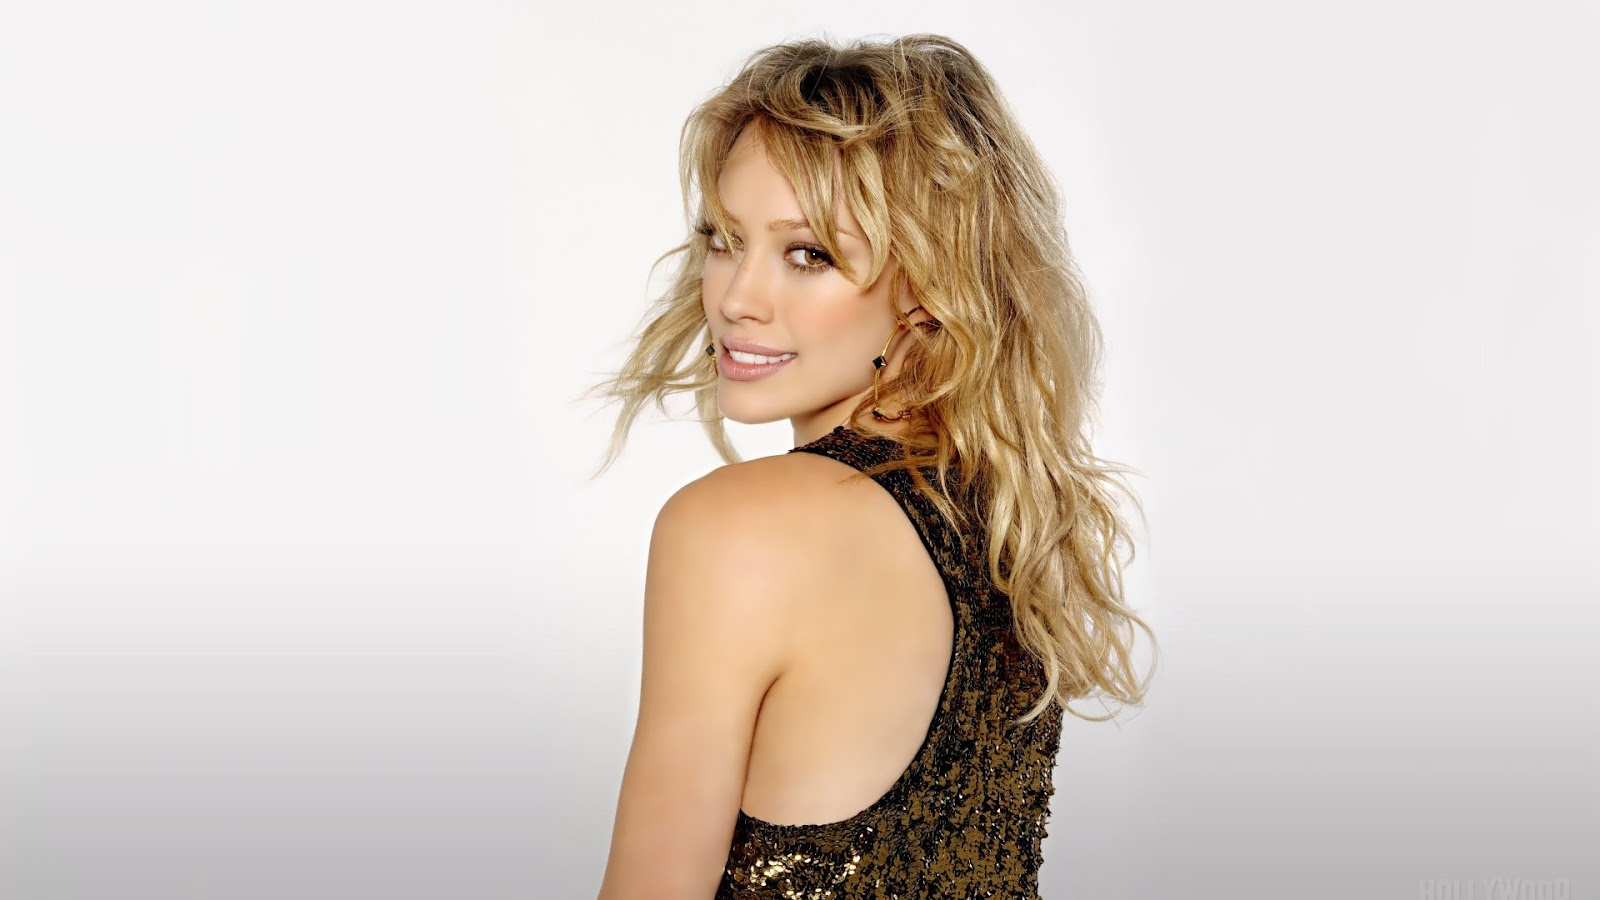 http://3.bp.blogspot.com/-1ZzUq4lVspI/UA9L2pXGaMI/AAAAAAAABHI/R5gFD3x6Hns/s1600/Hilary-Duff-hilary-duff-female-celebrities-wallpaper-widescreen-supermodel-1920x1080.jpg